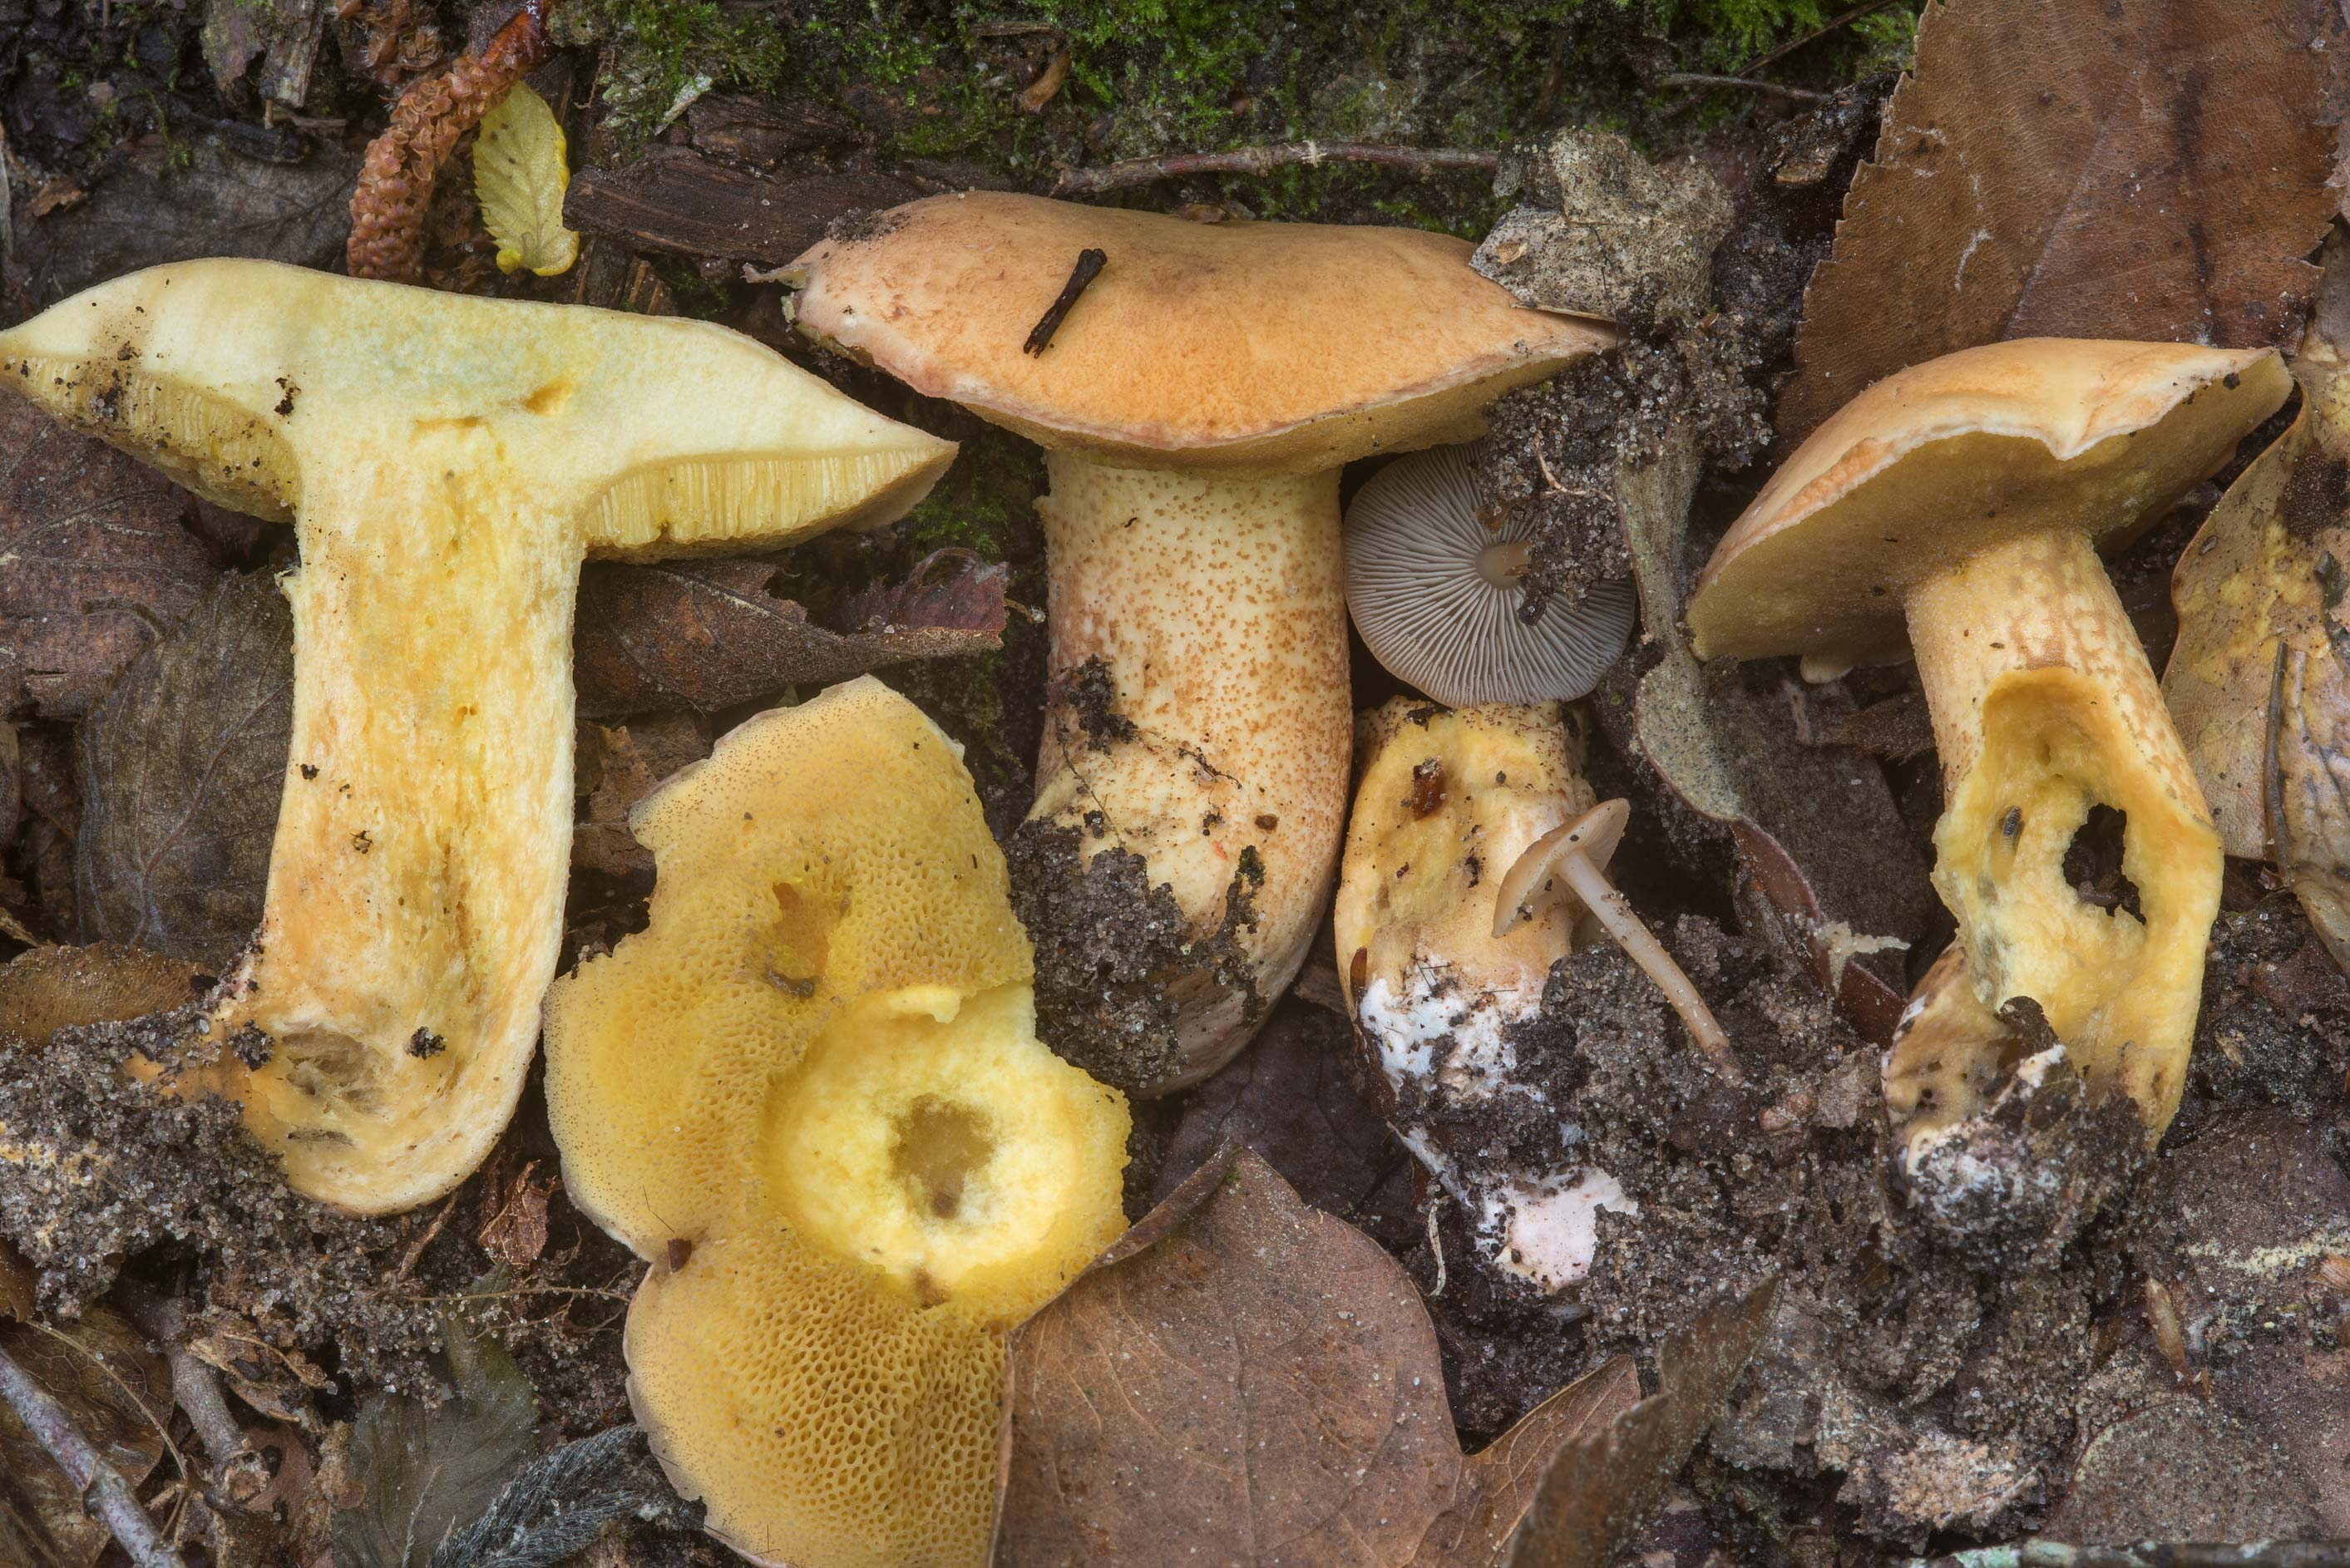 Group of bolete mushrooms Suillus on Caney Creek...National Forest near Huntsville, Texas